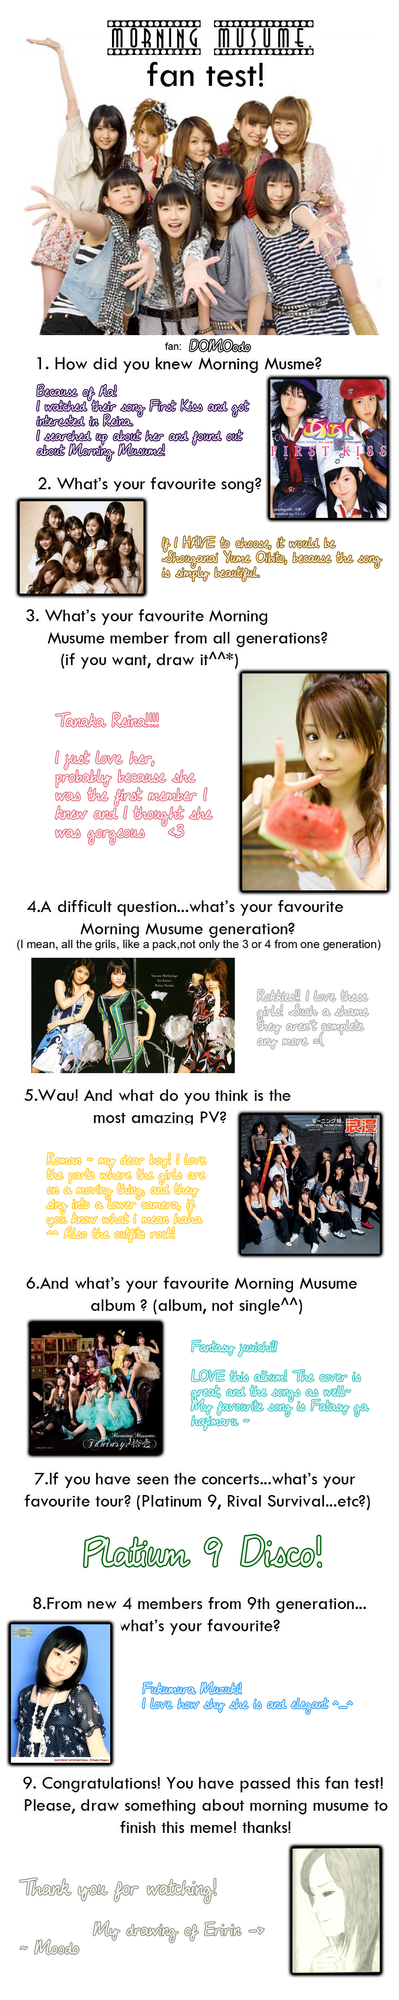 Morning Musume Fan Test by DOMOodo